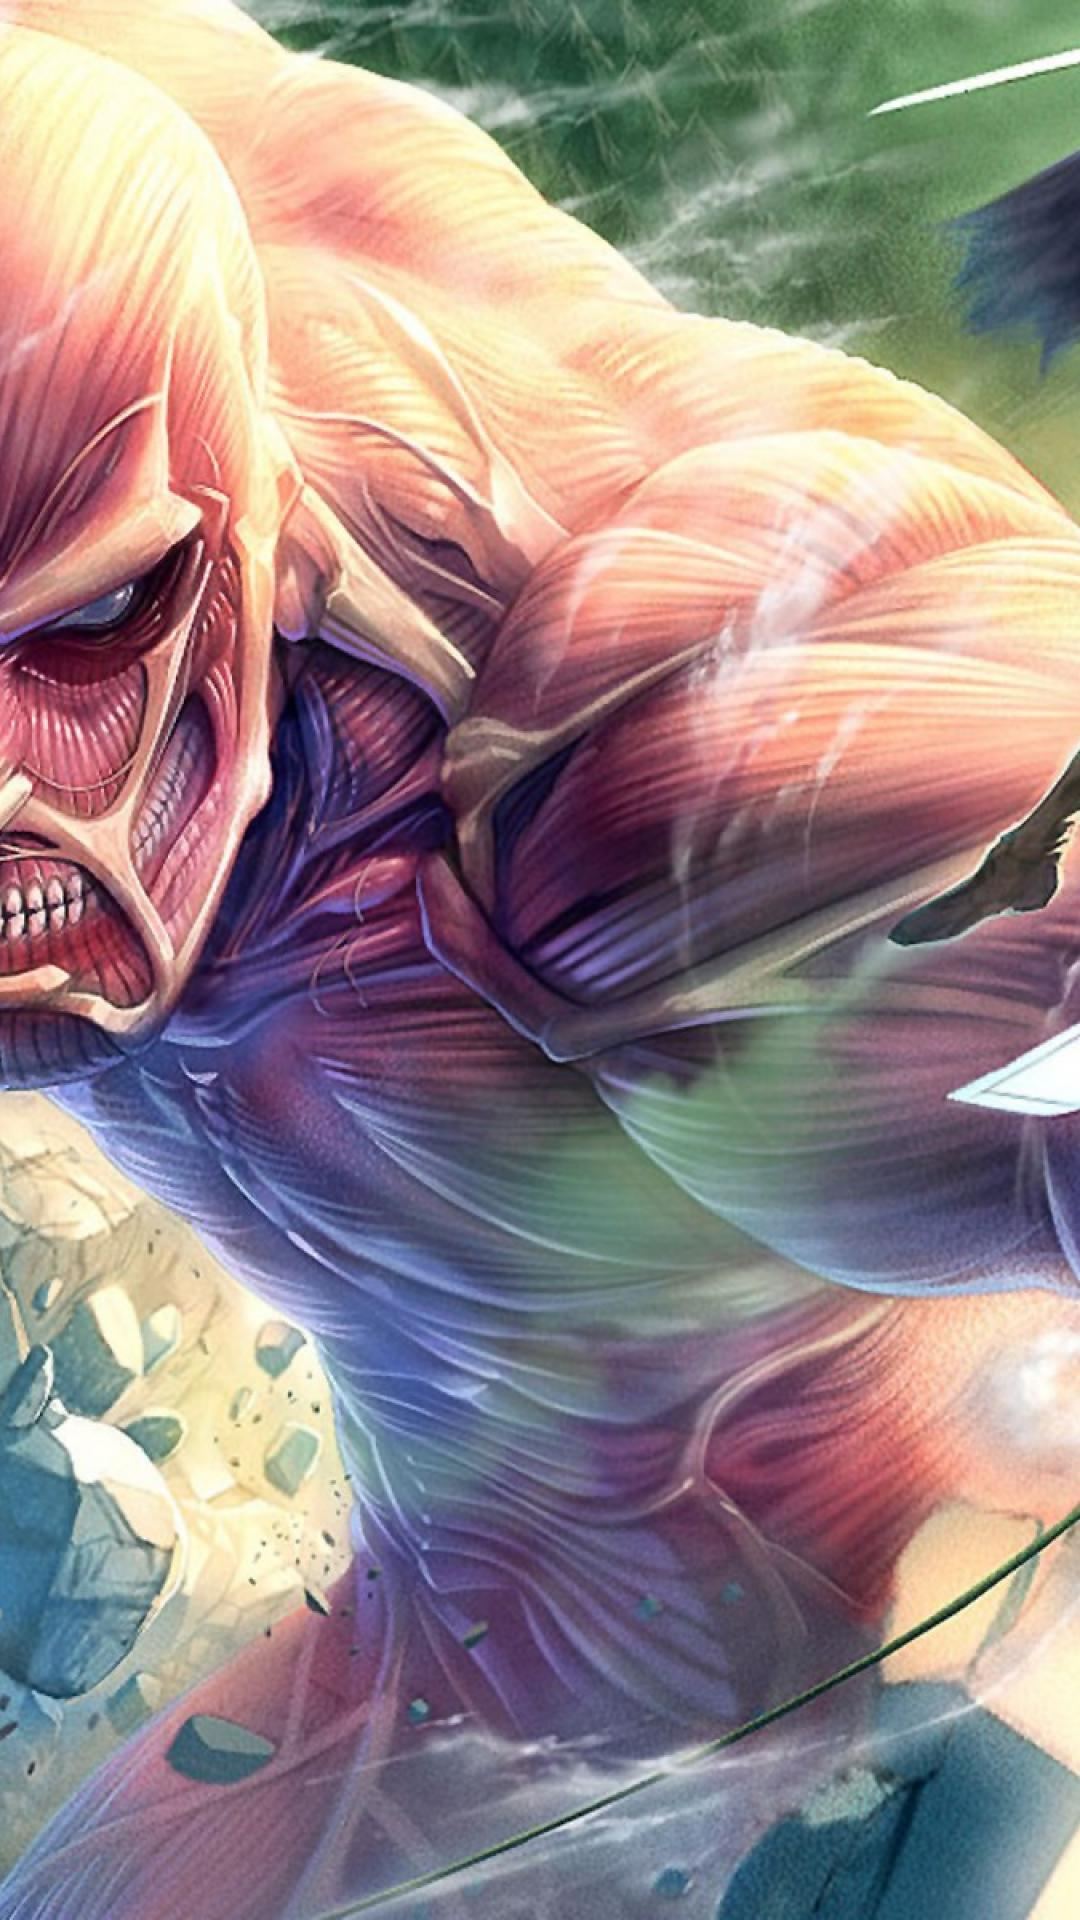 5800 Koleksi Wallpaper Hp Attack On Titan Hd Gratis Terbaru